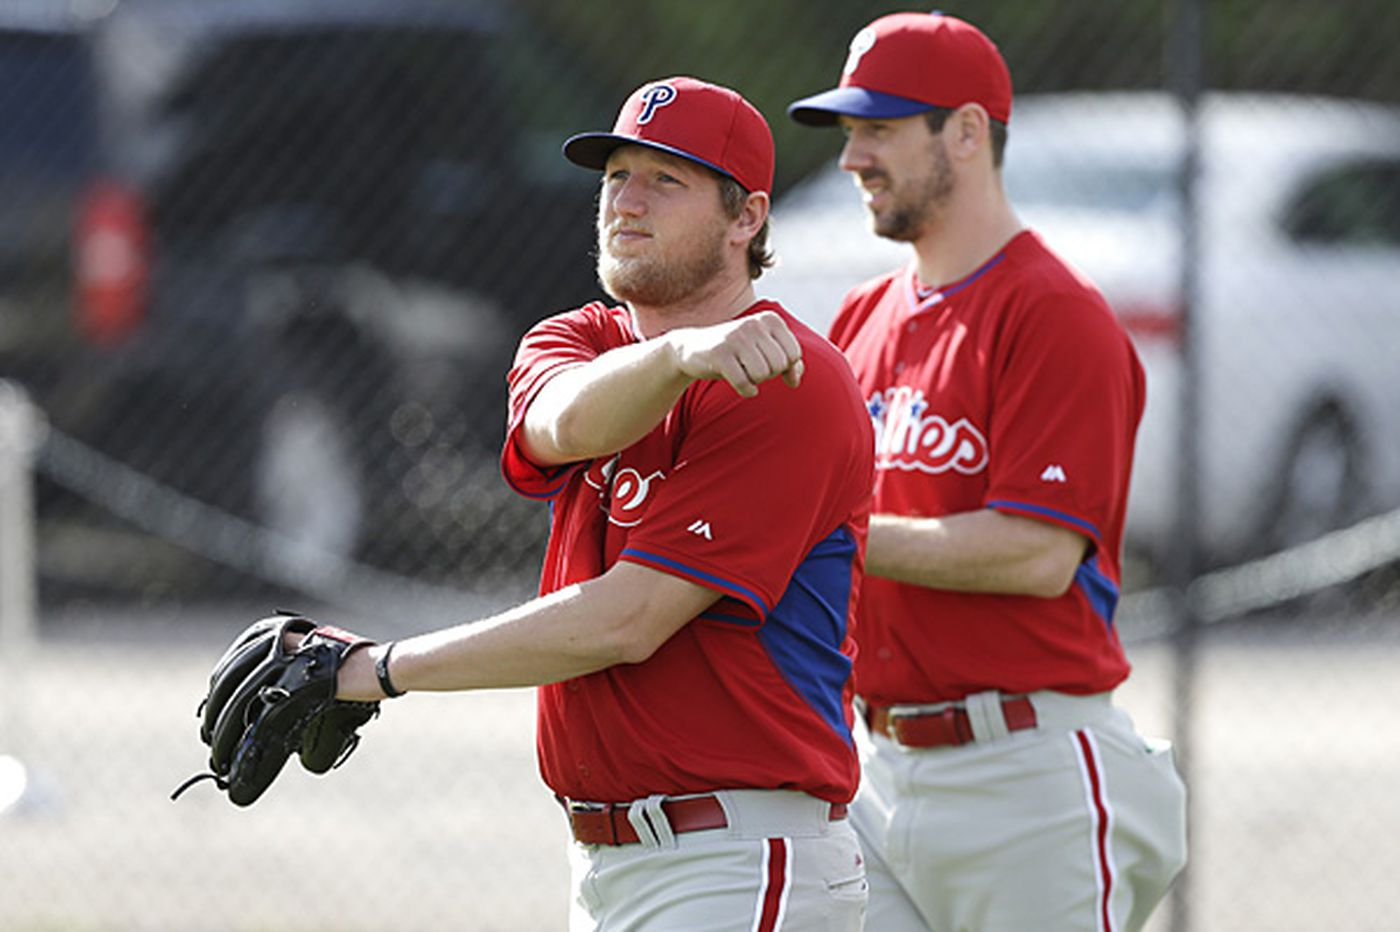 Phillies Minor League Report: Pitcher Ethan Martin strong for Clearwater